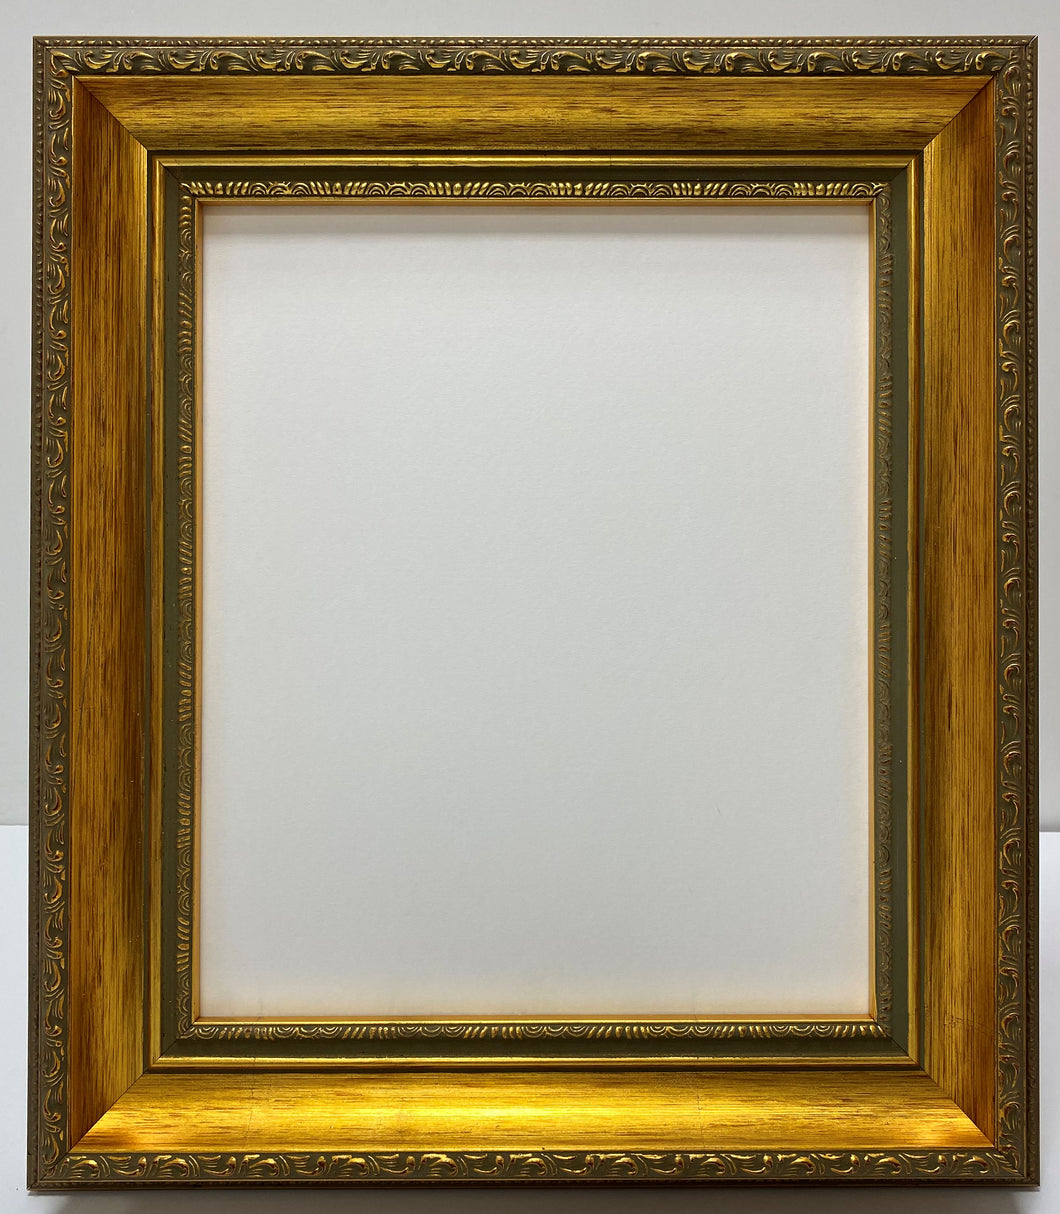 Decorative Gold leaf effect wooden Picture Frame (60mm wide)